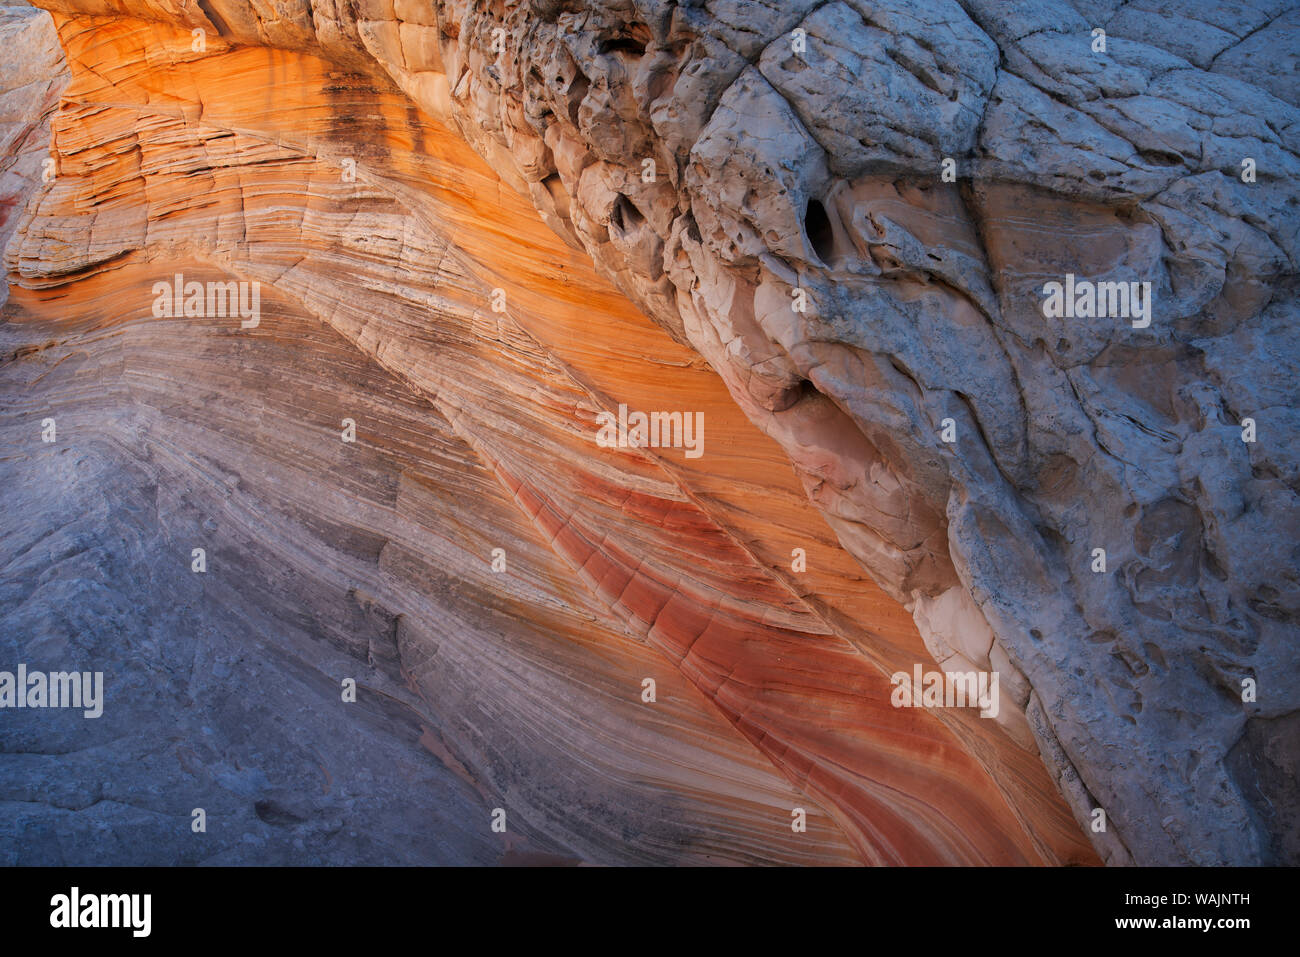 USA, Arizona, Vermilion Cliffs National Monument. Stries dans des formations de grès. En tant que crédit : Don Grall / Jaynes Gallery / DanitaDelimont.com Banque D'Images